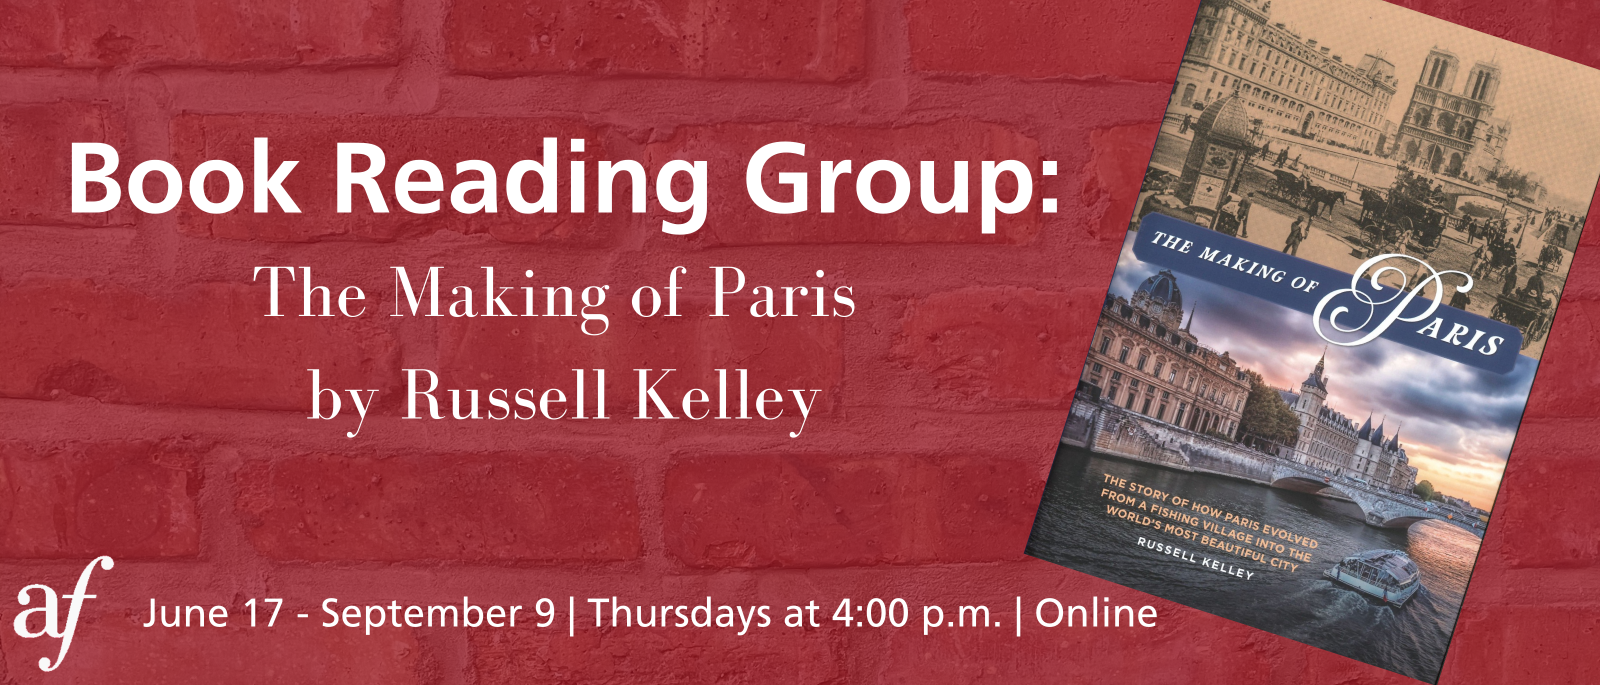 Book Reading Group: The Making of Paris - Session 3